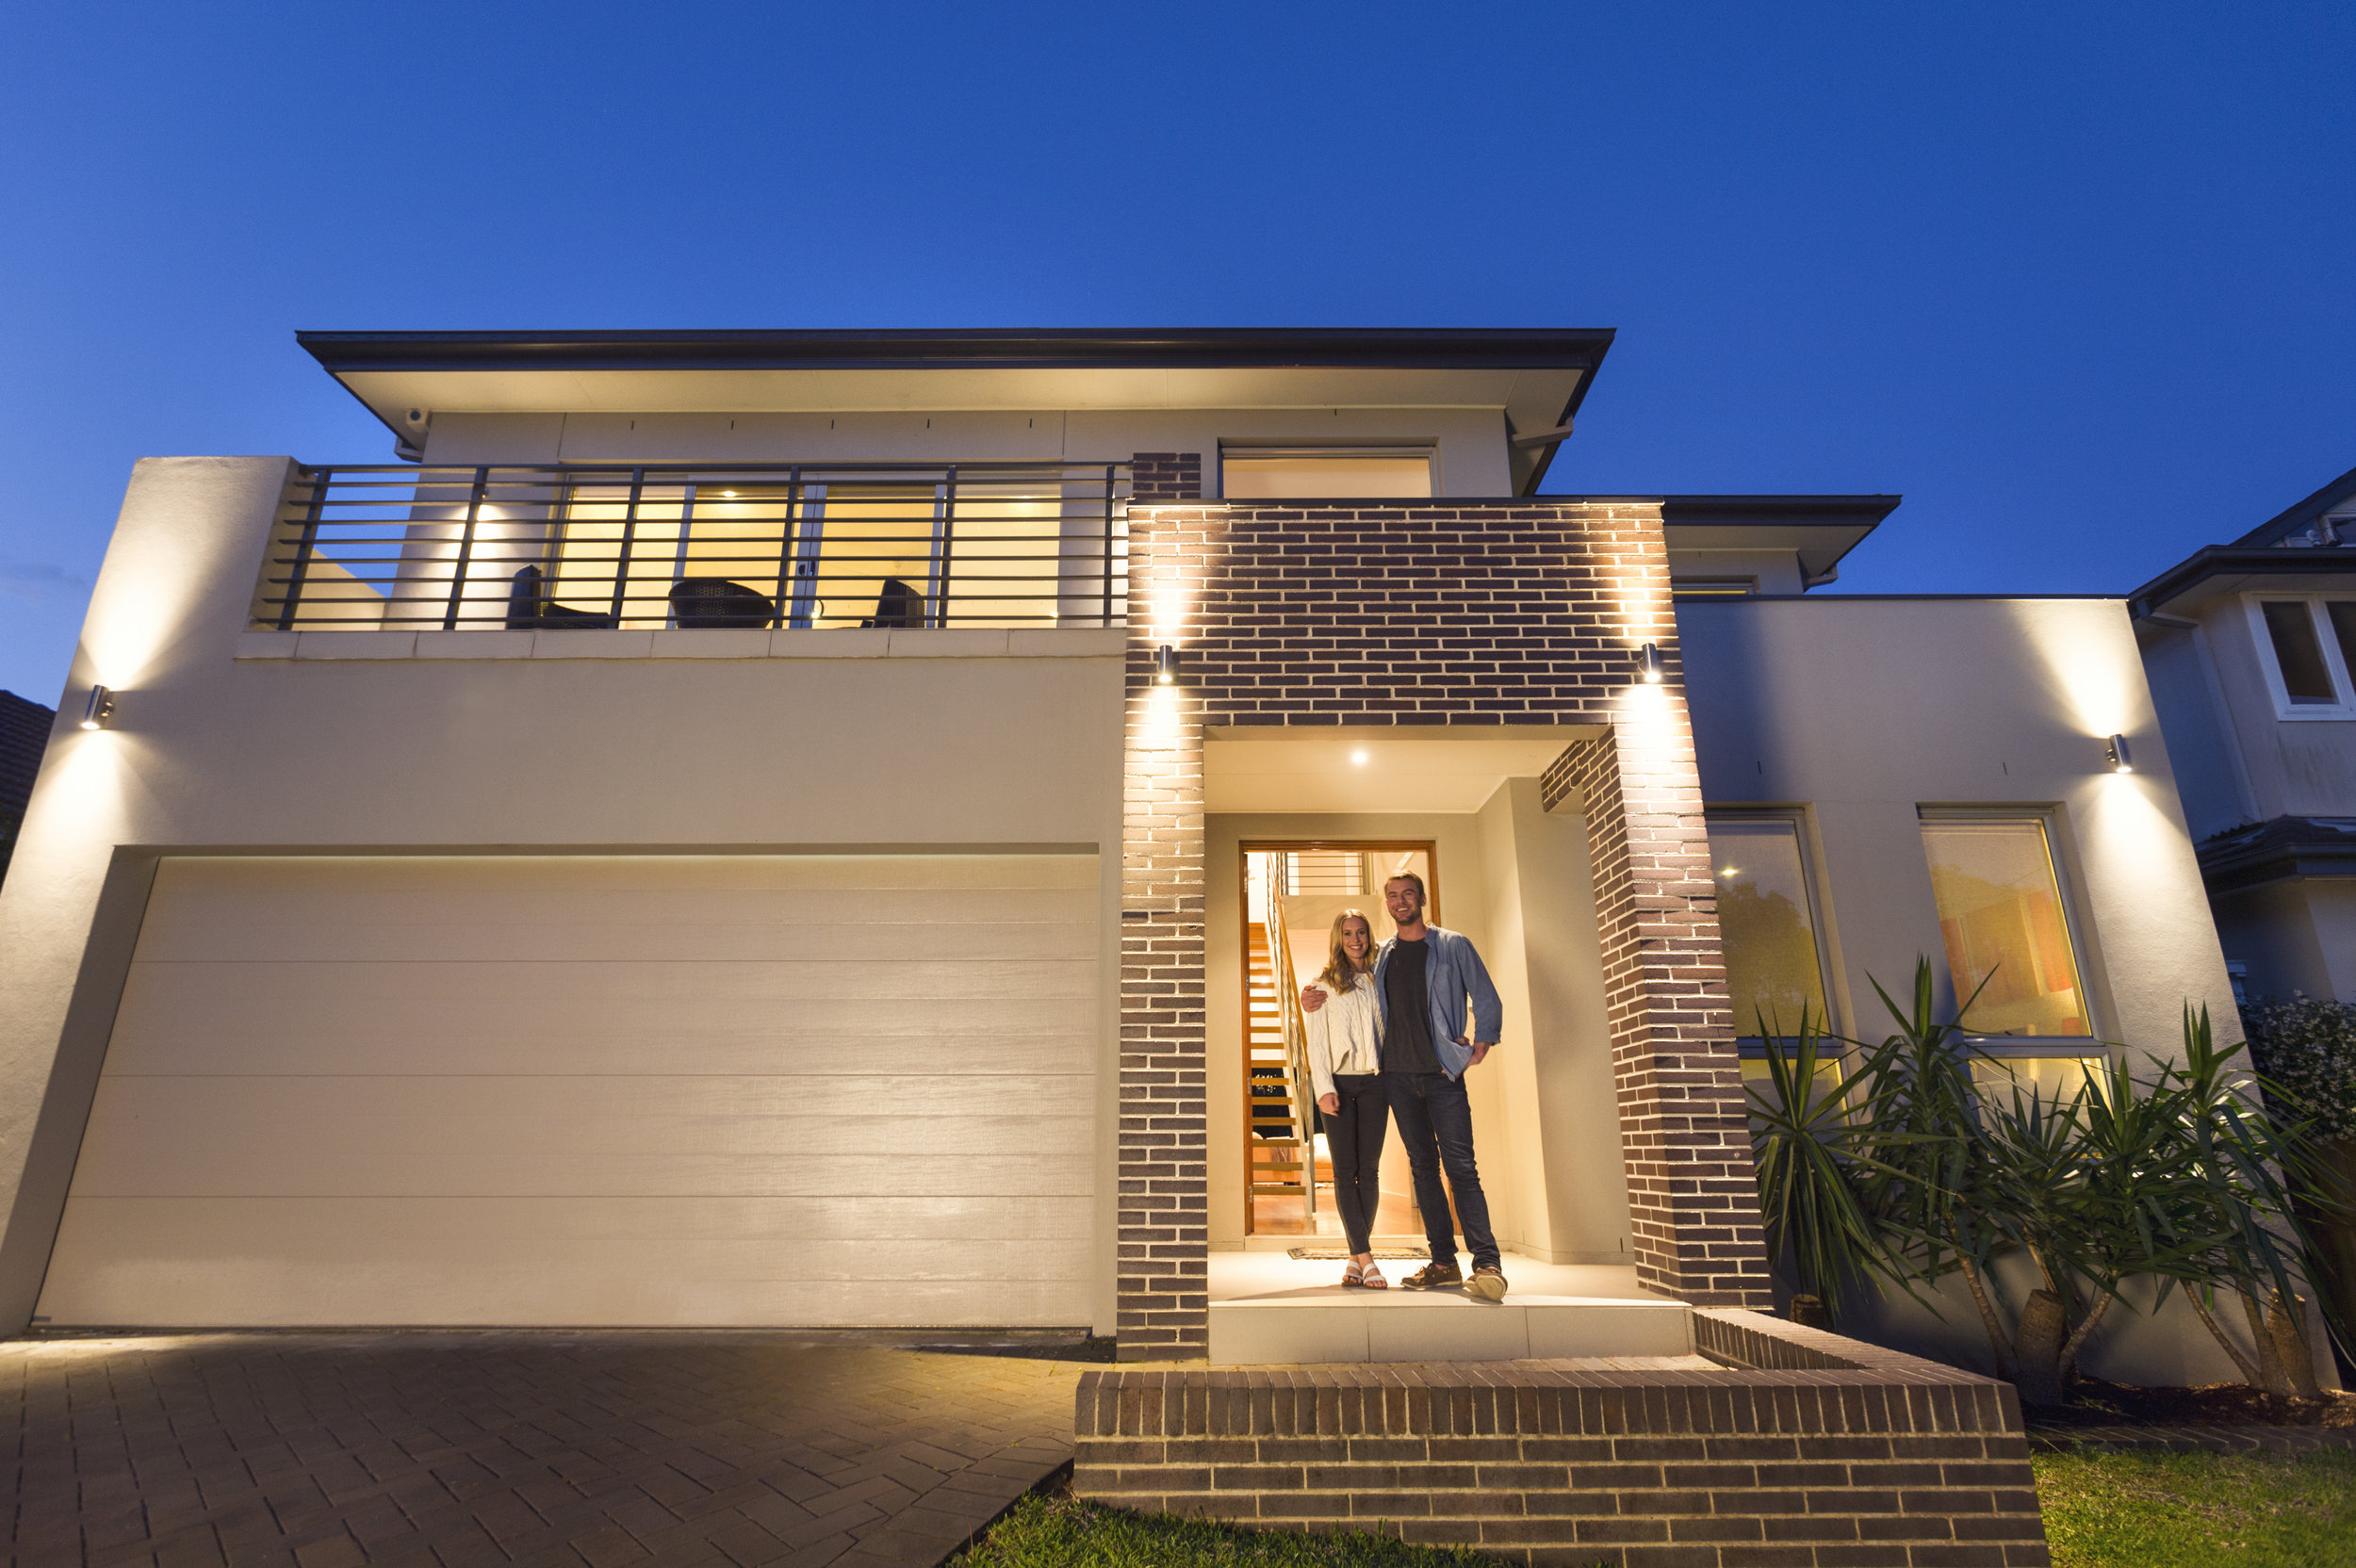 Couple-standing-in-front-of-their-new-home-000085622793_Double.jpg